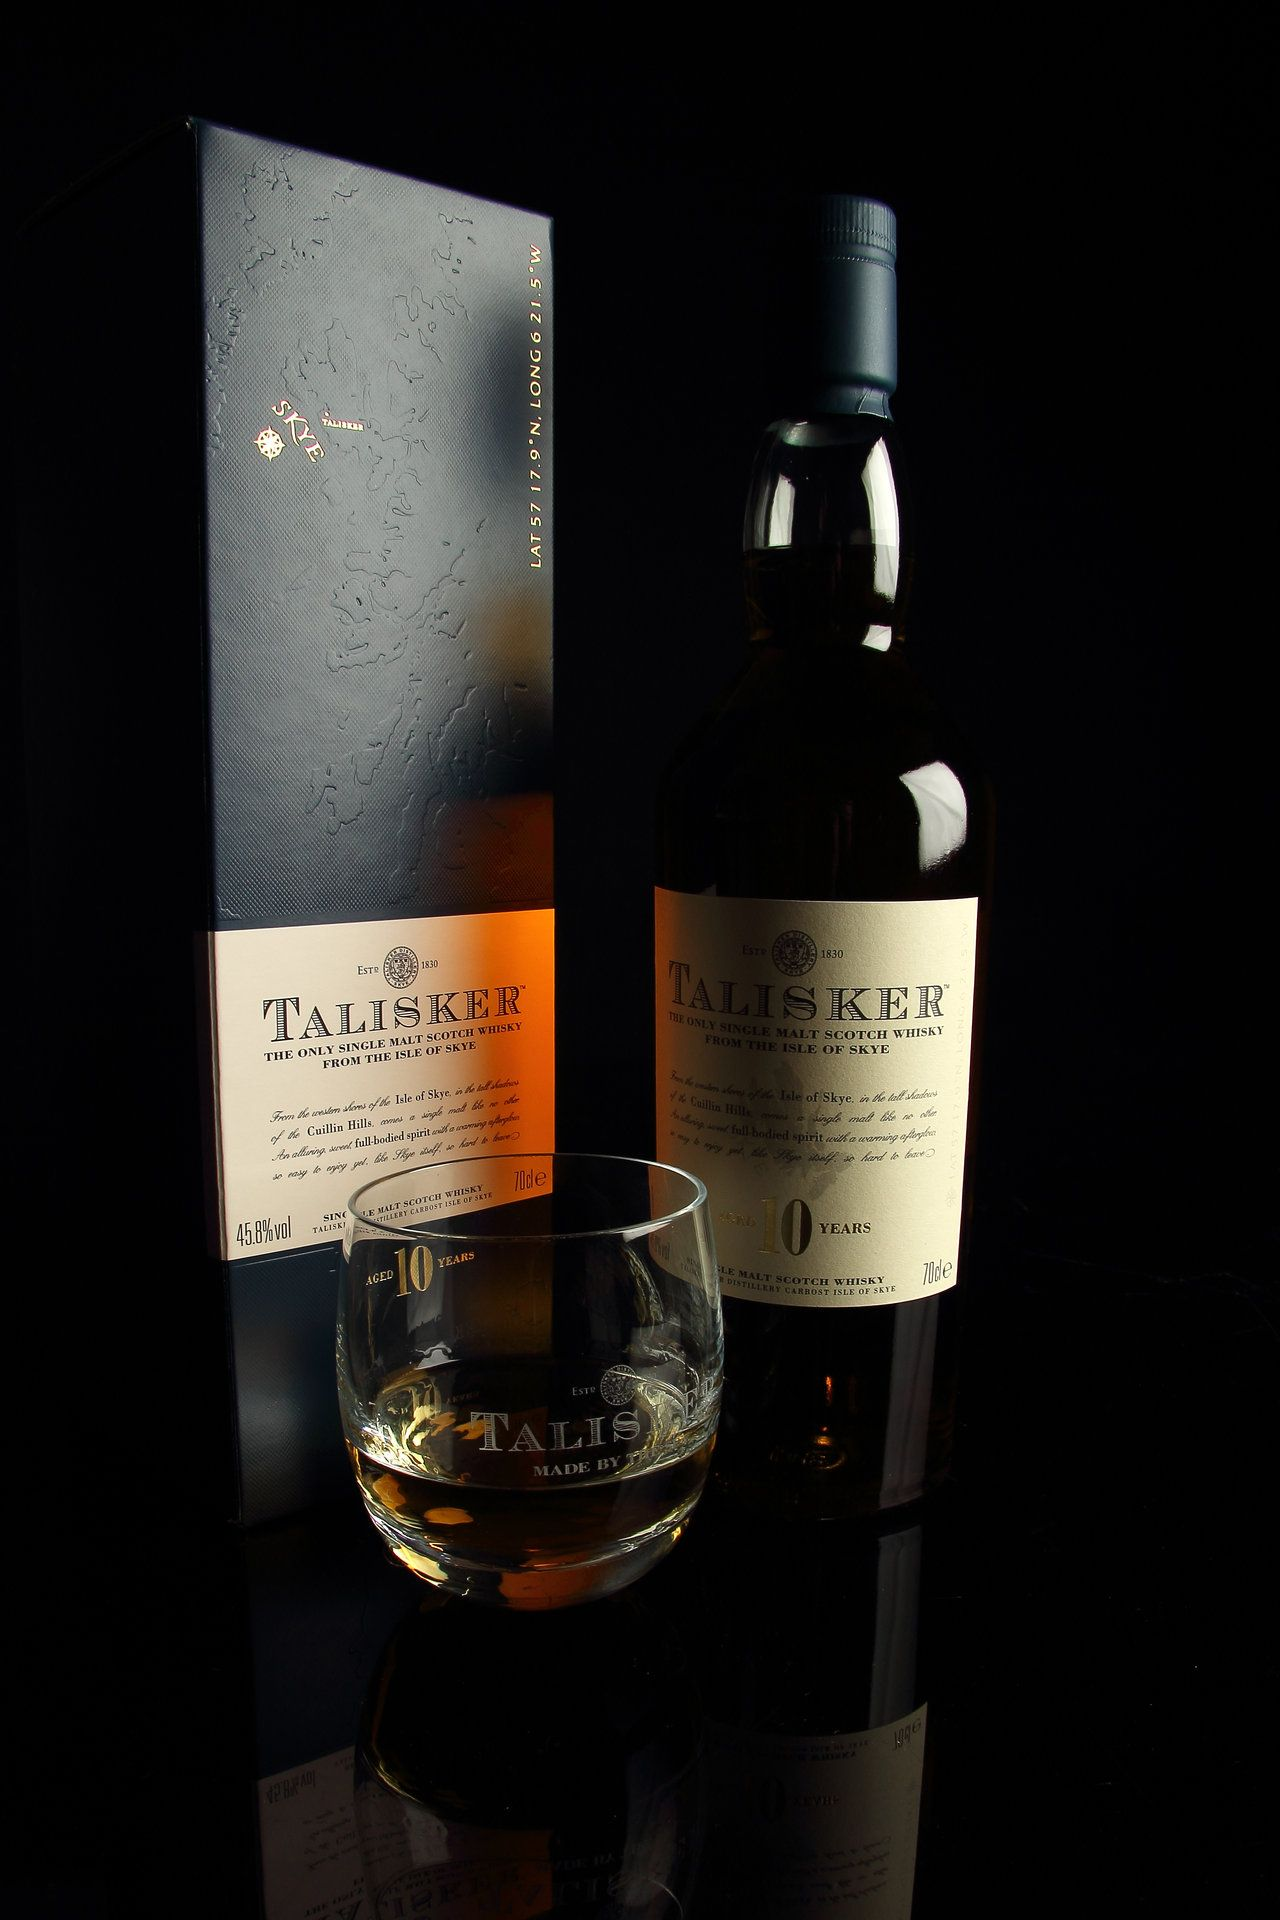 Talisker Whisky 10 Years By Damiankane Deviantart Com On Deviantart Whisky Botellas Whisky Botellas